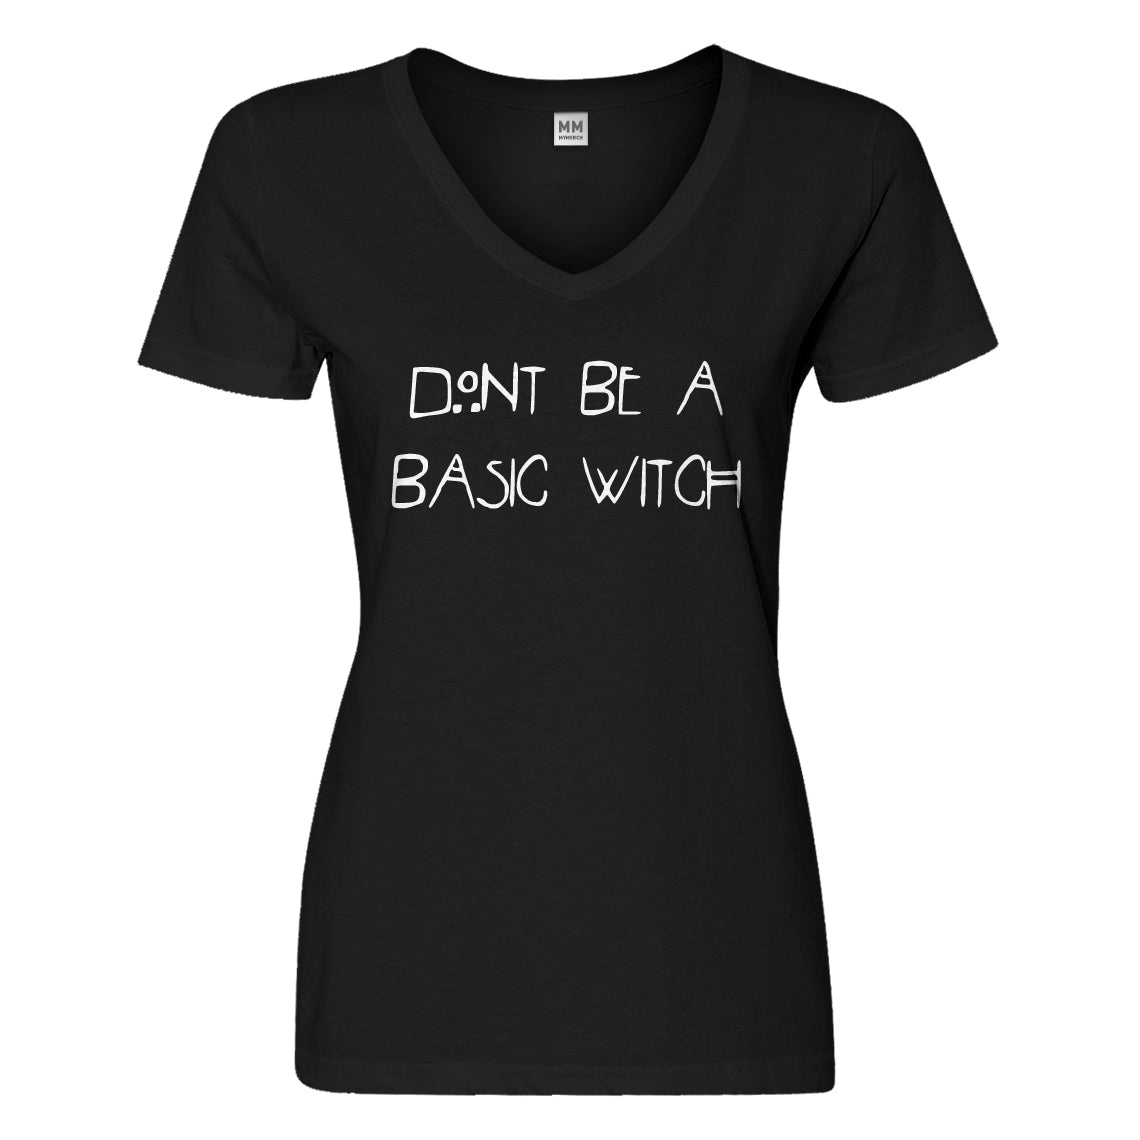 Womens Dont Be a Basic Witch Vneck T-shirt